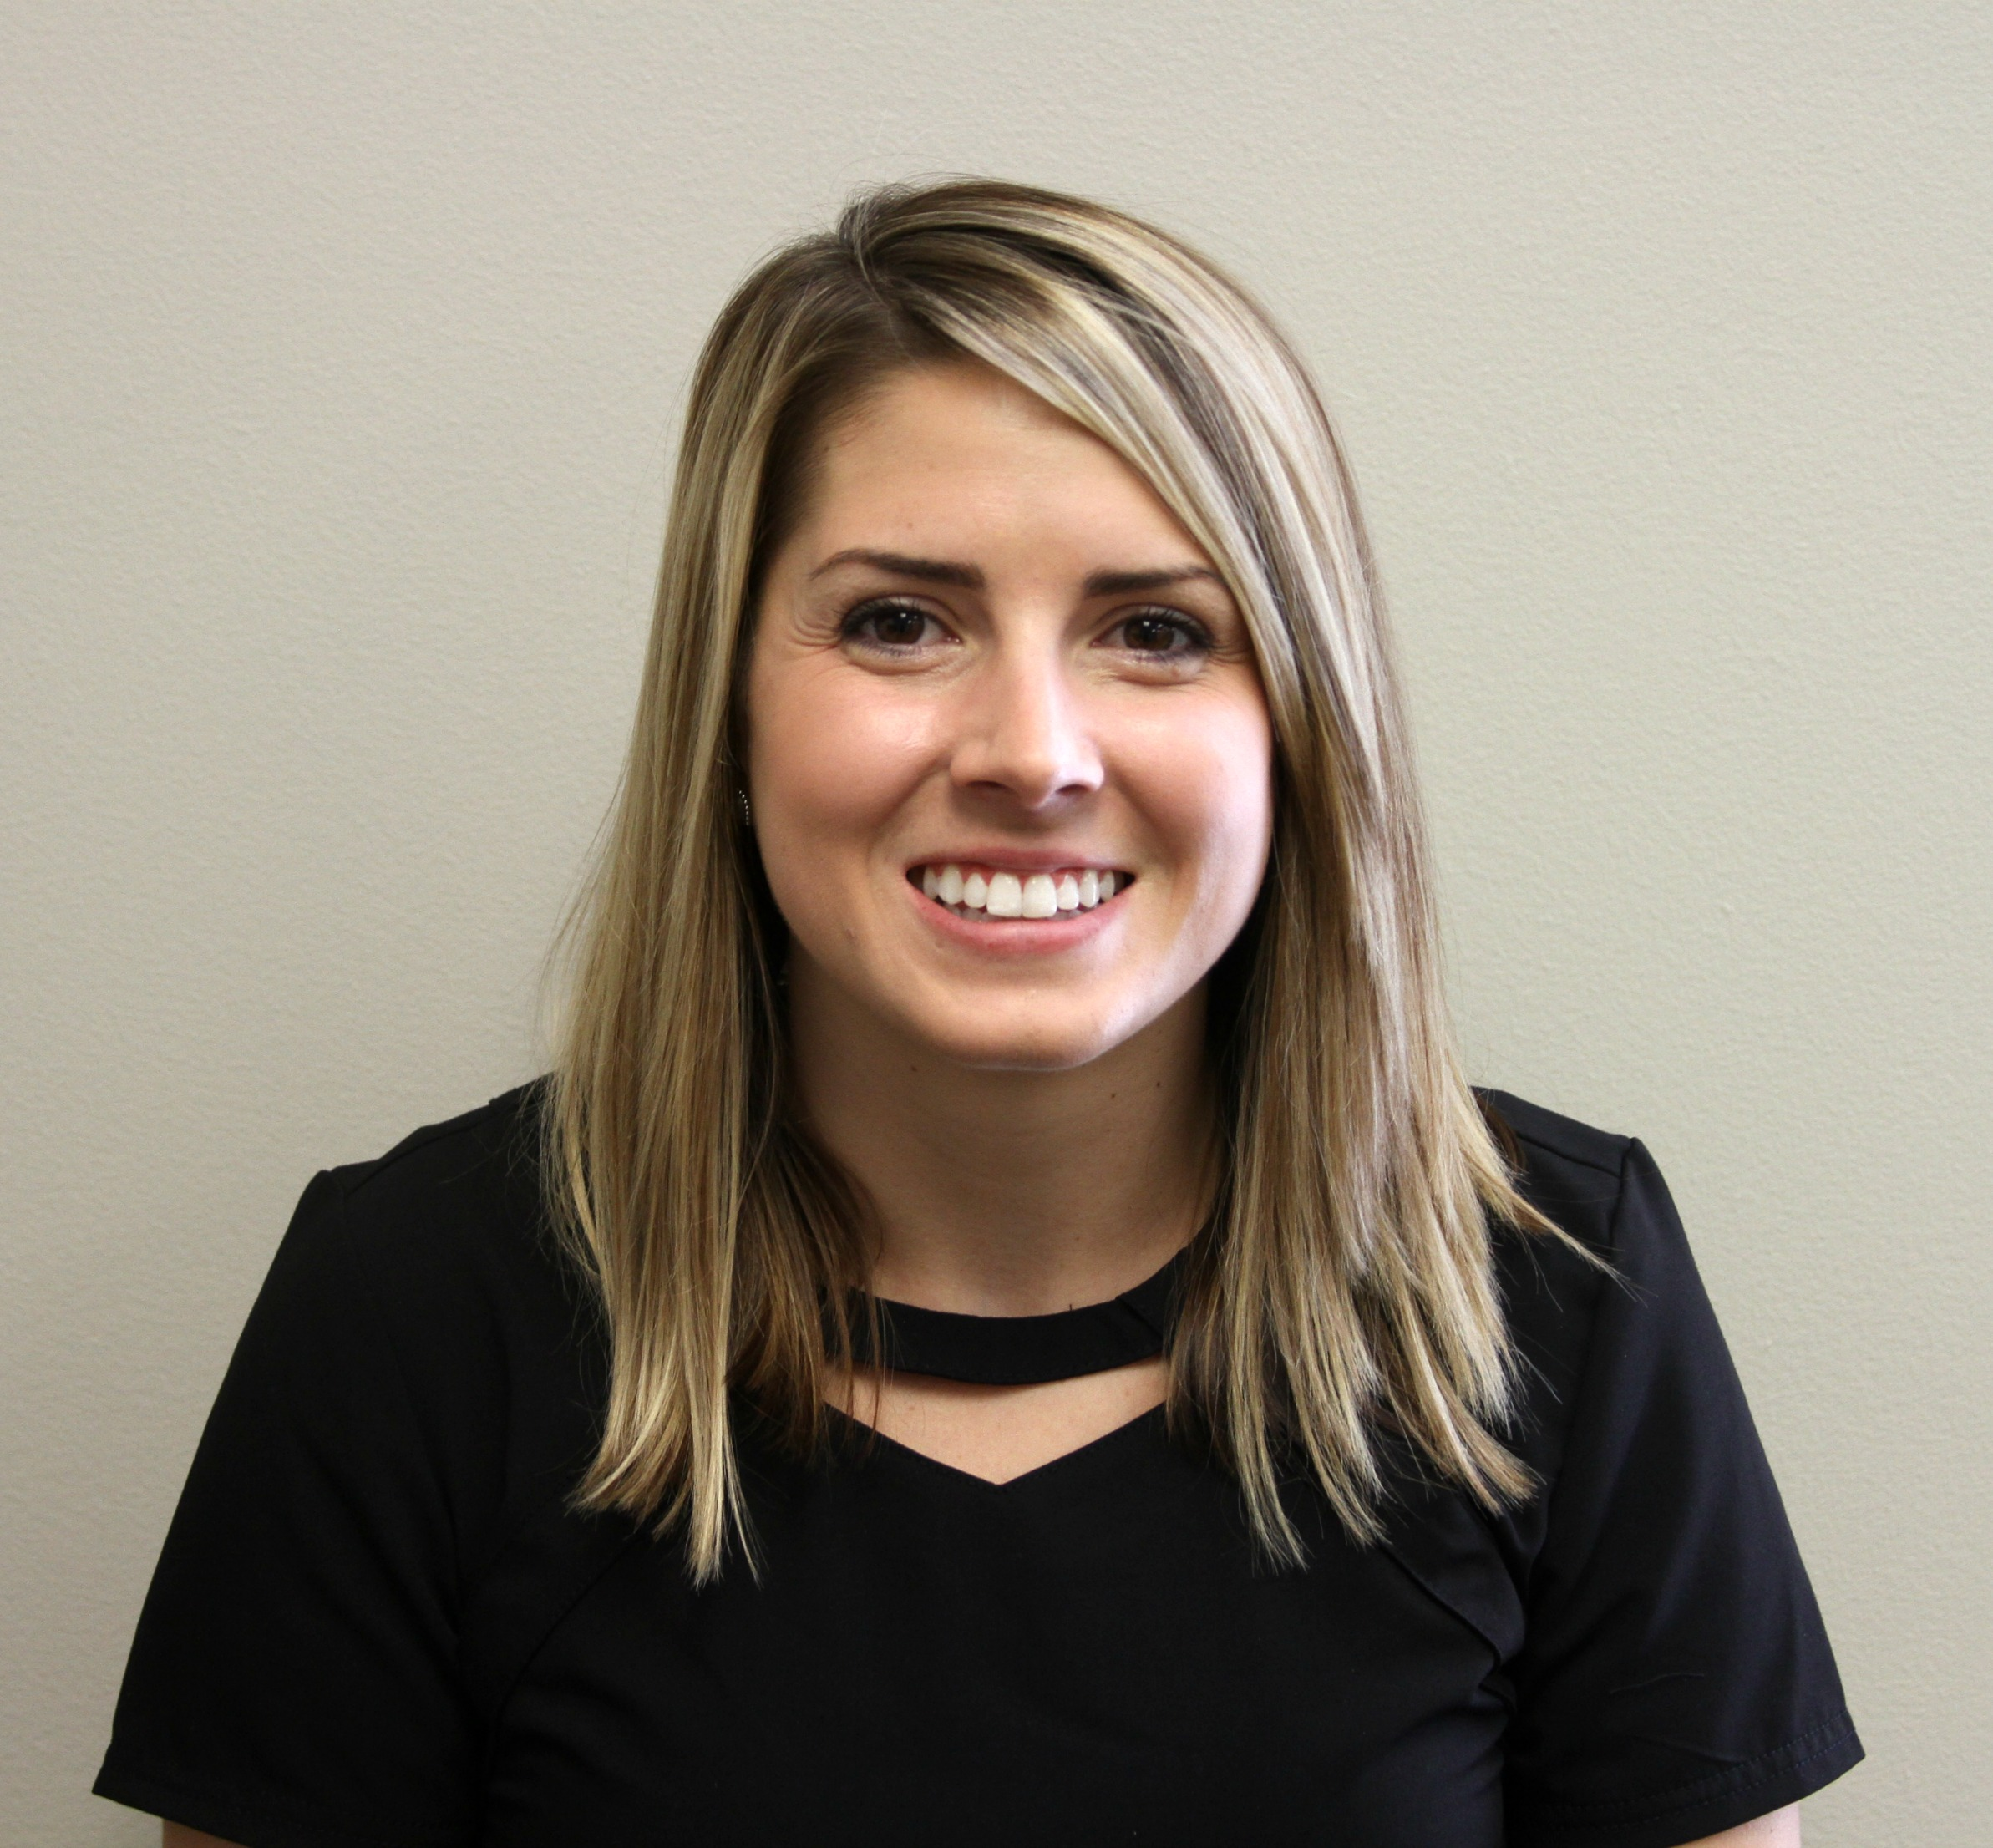 Megan is a part of our administrative staff team, she has been with our office for almost 2 years but and has been in the industry for over 4 years. During her free time she enjoys spending time with her family including her two children and two dogs.